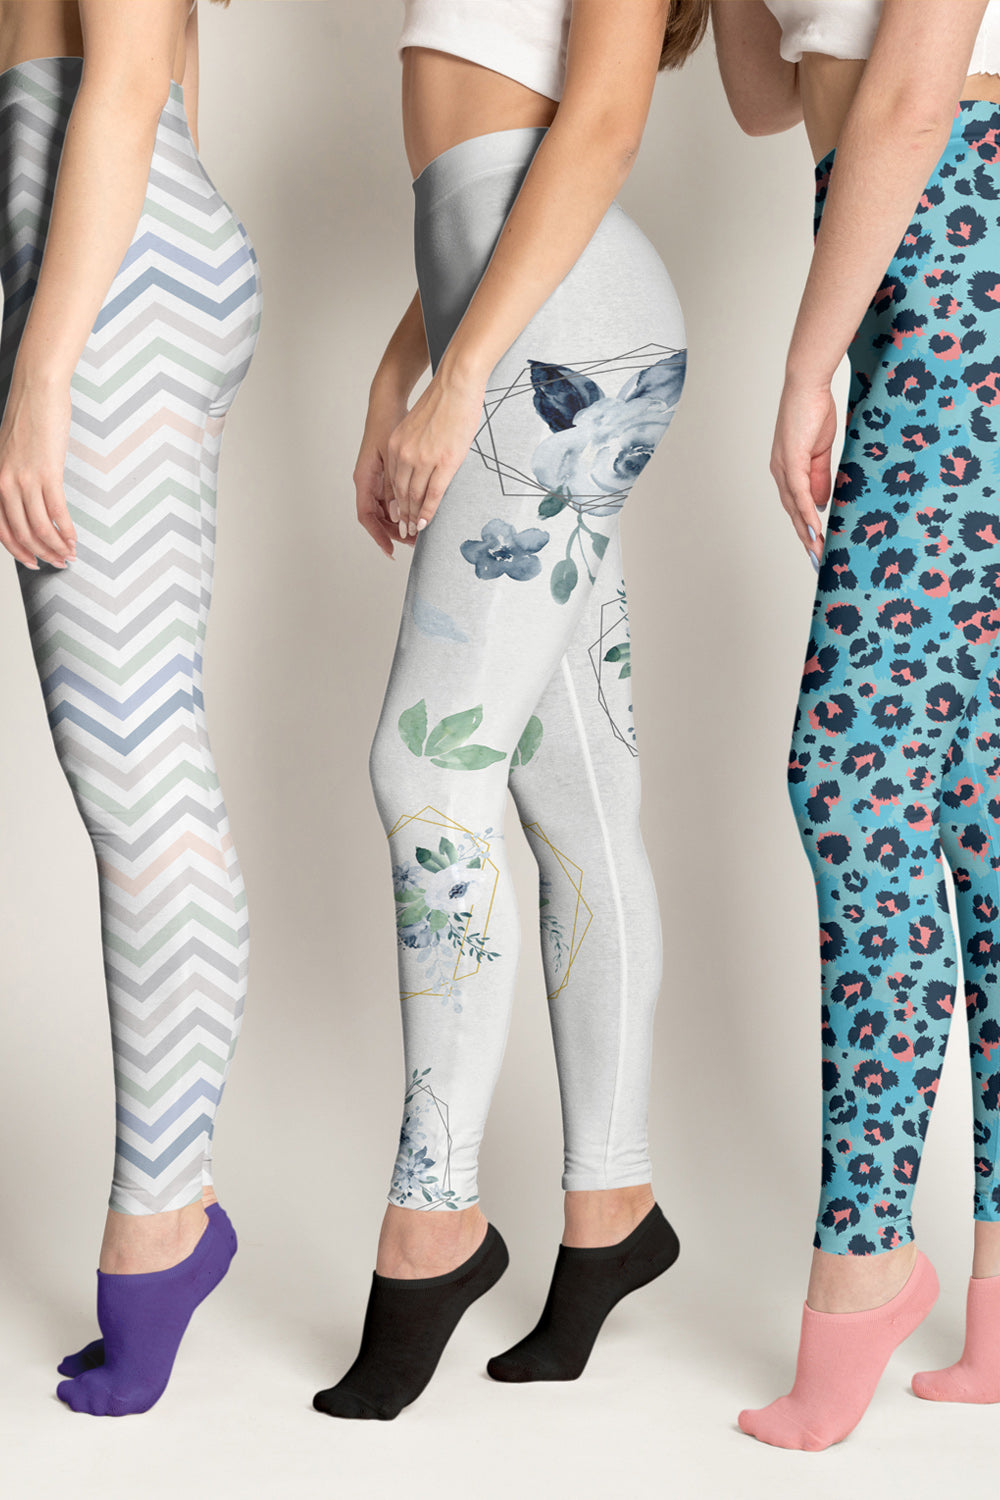 Roses-white-blue-green-gold-elegant-women-urban-leggings